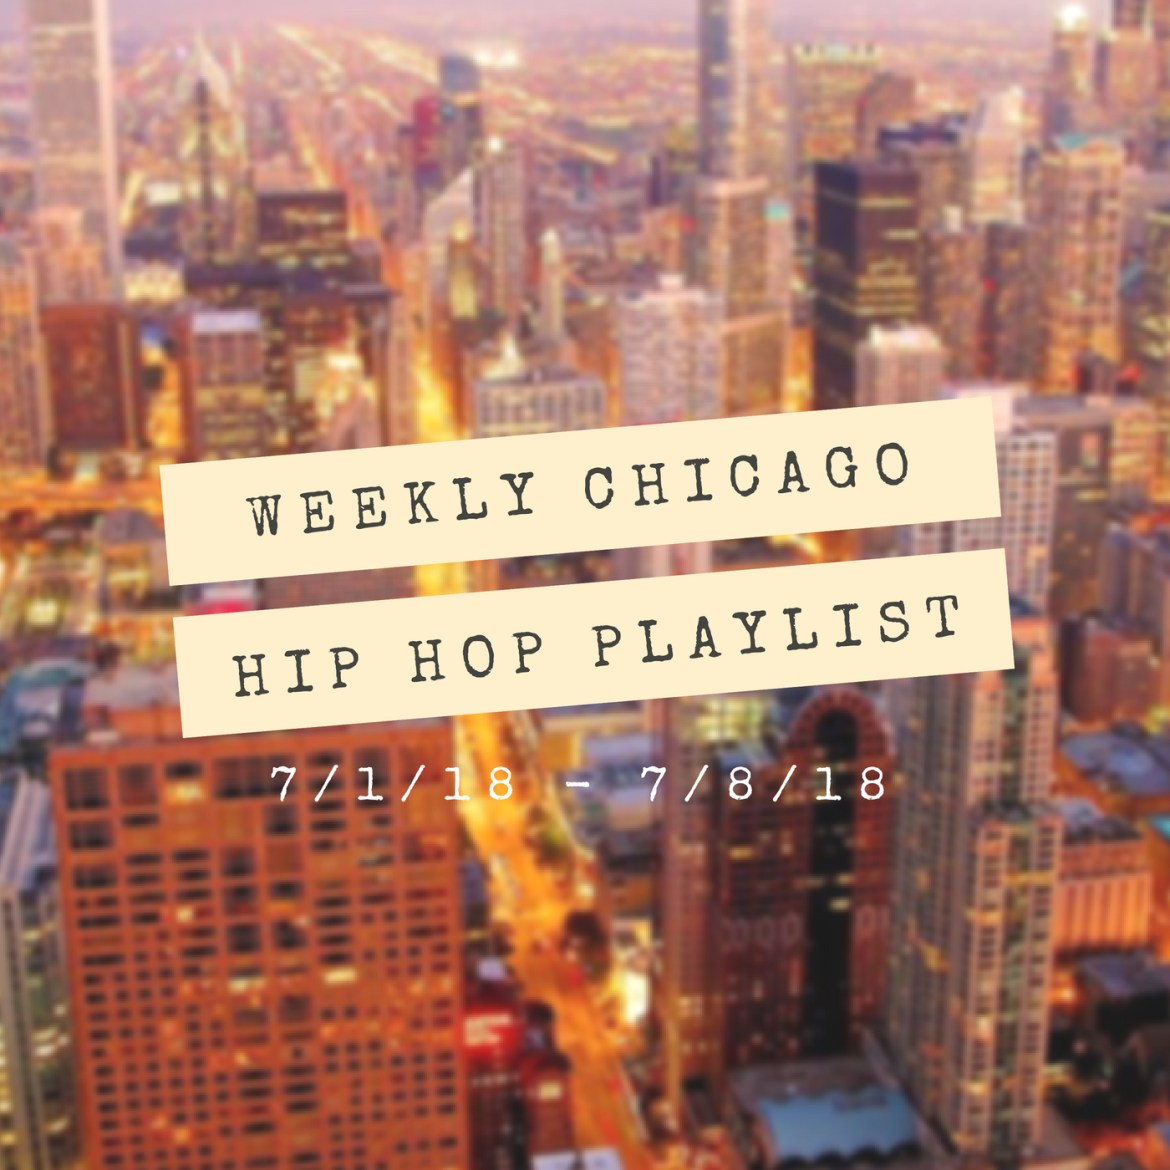 Weekly Chicago Hip Hop Playlist: 7/1/18-7/8/18